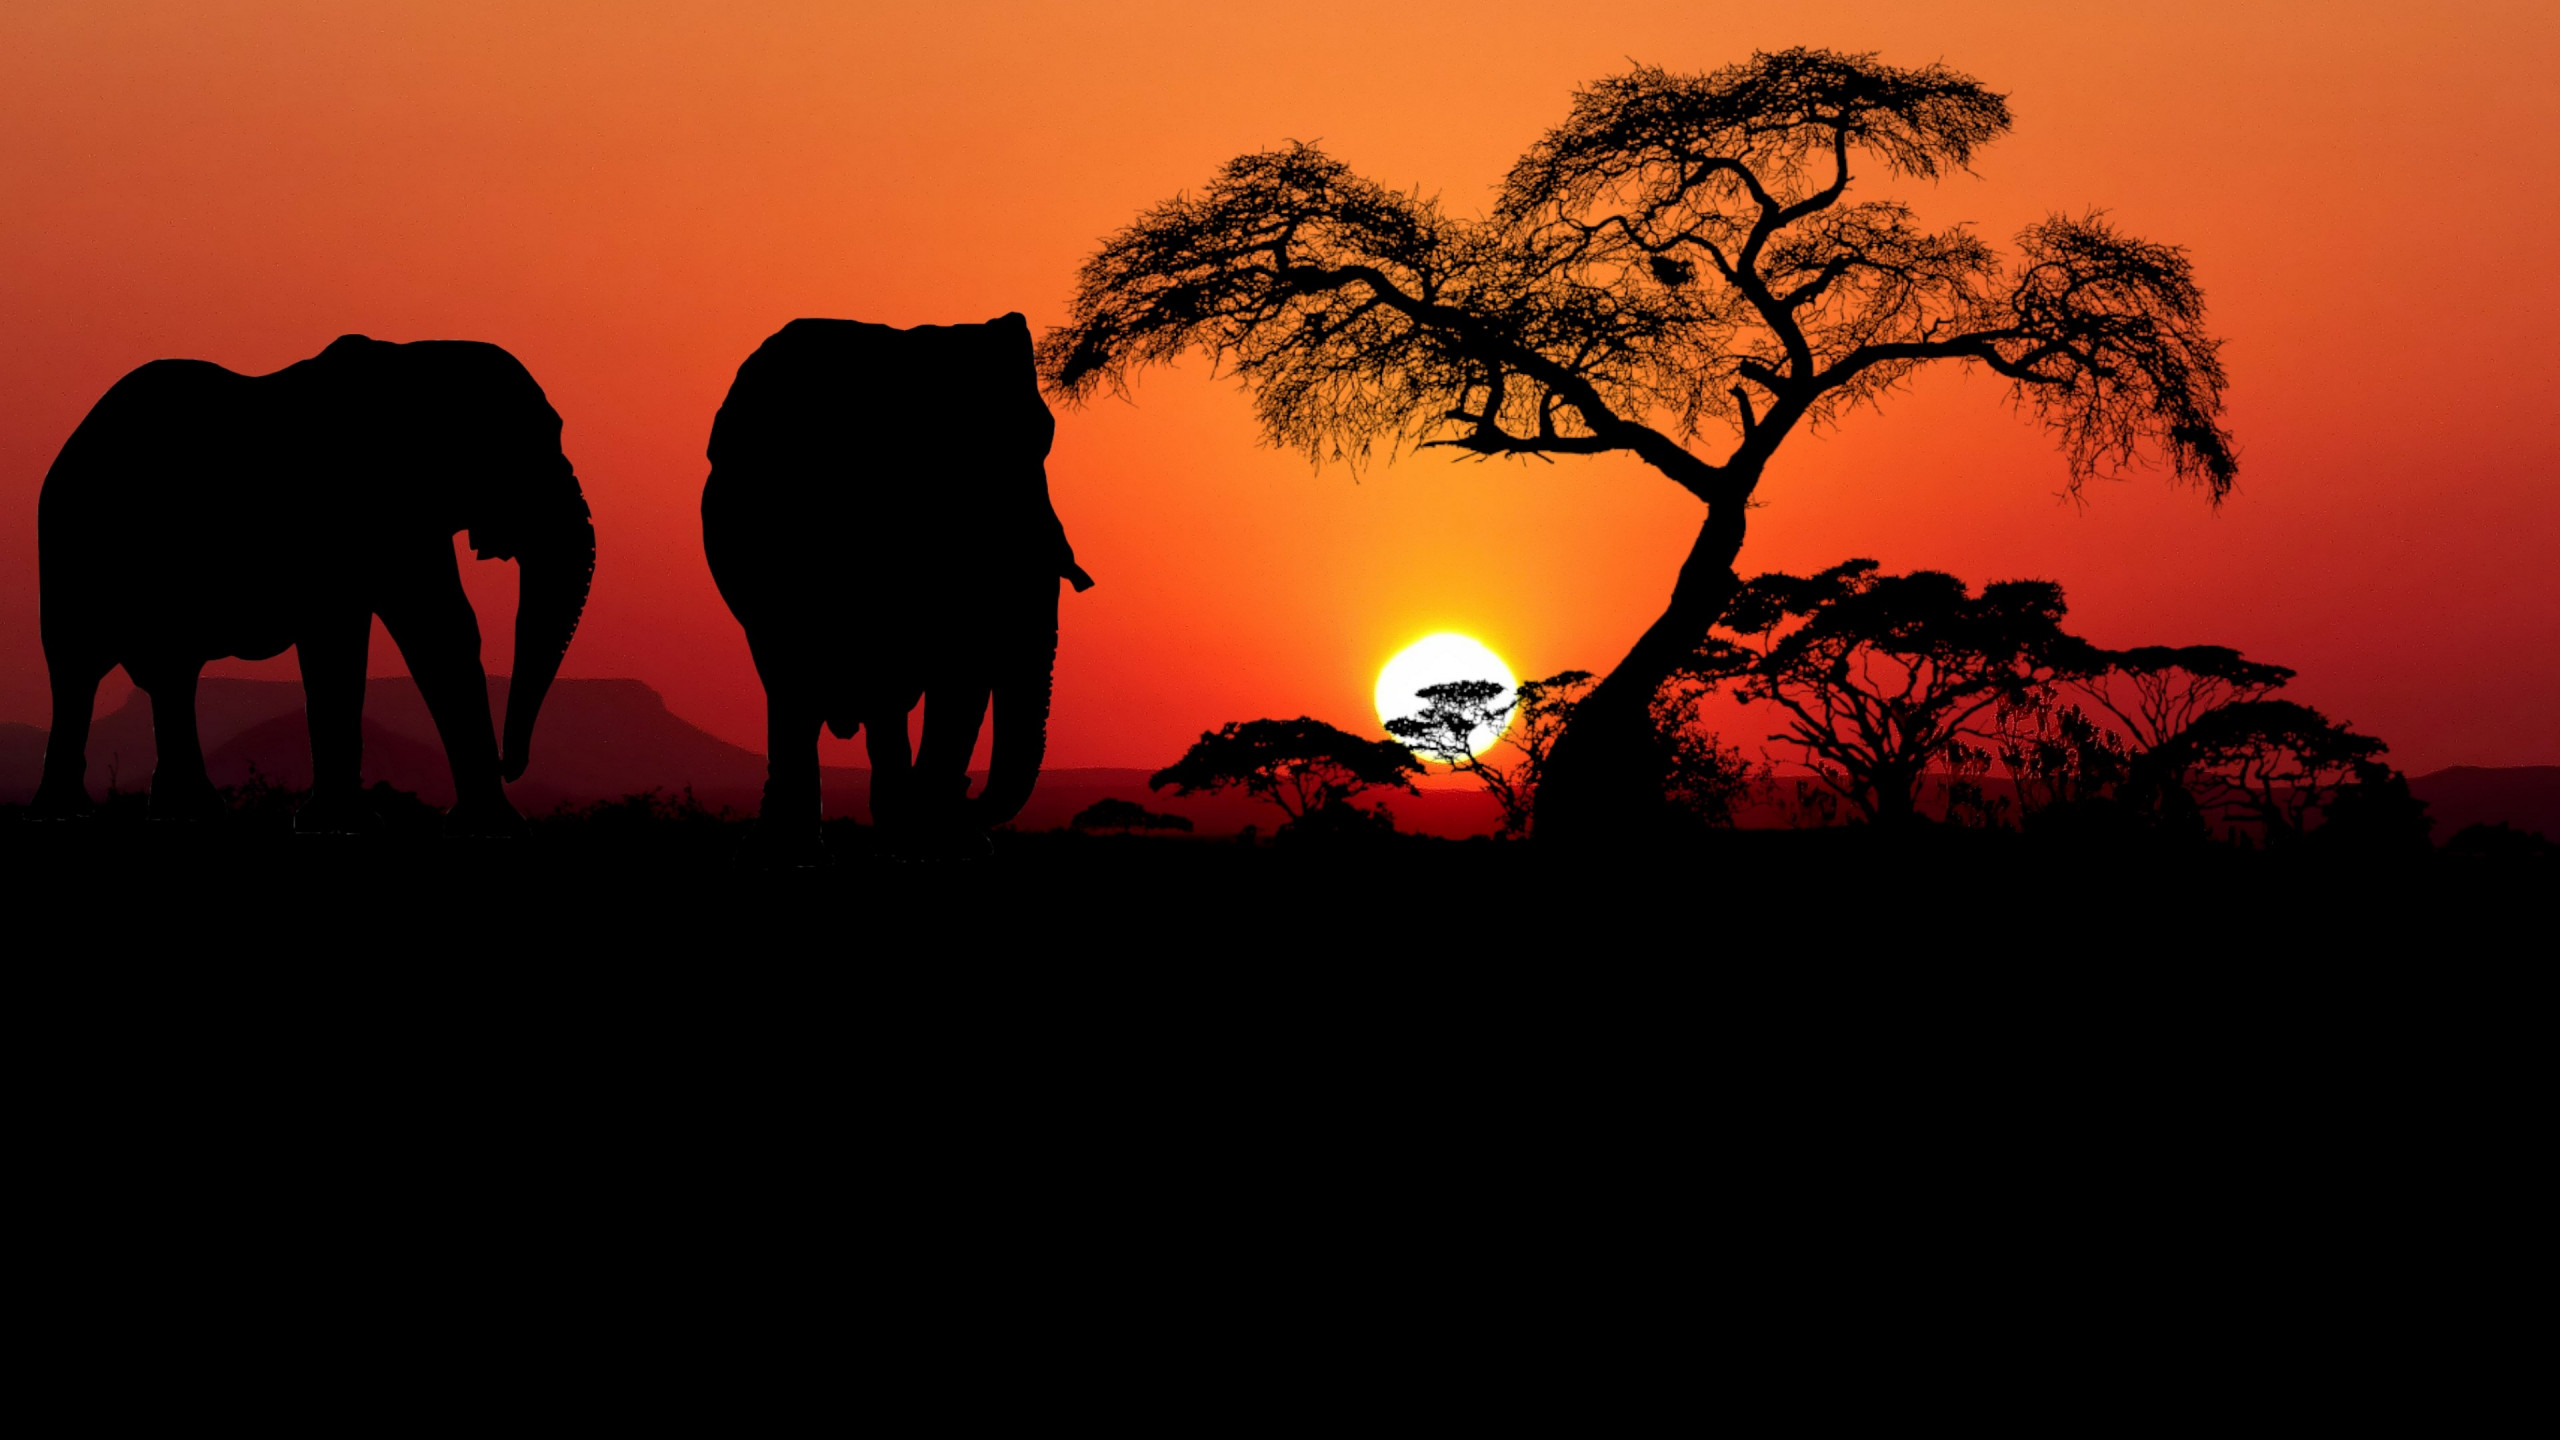 Sunset in Savanna wallpaper 2560x1440